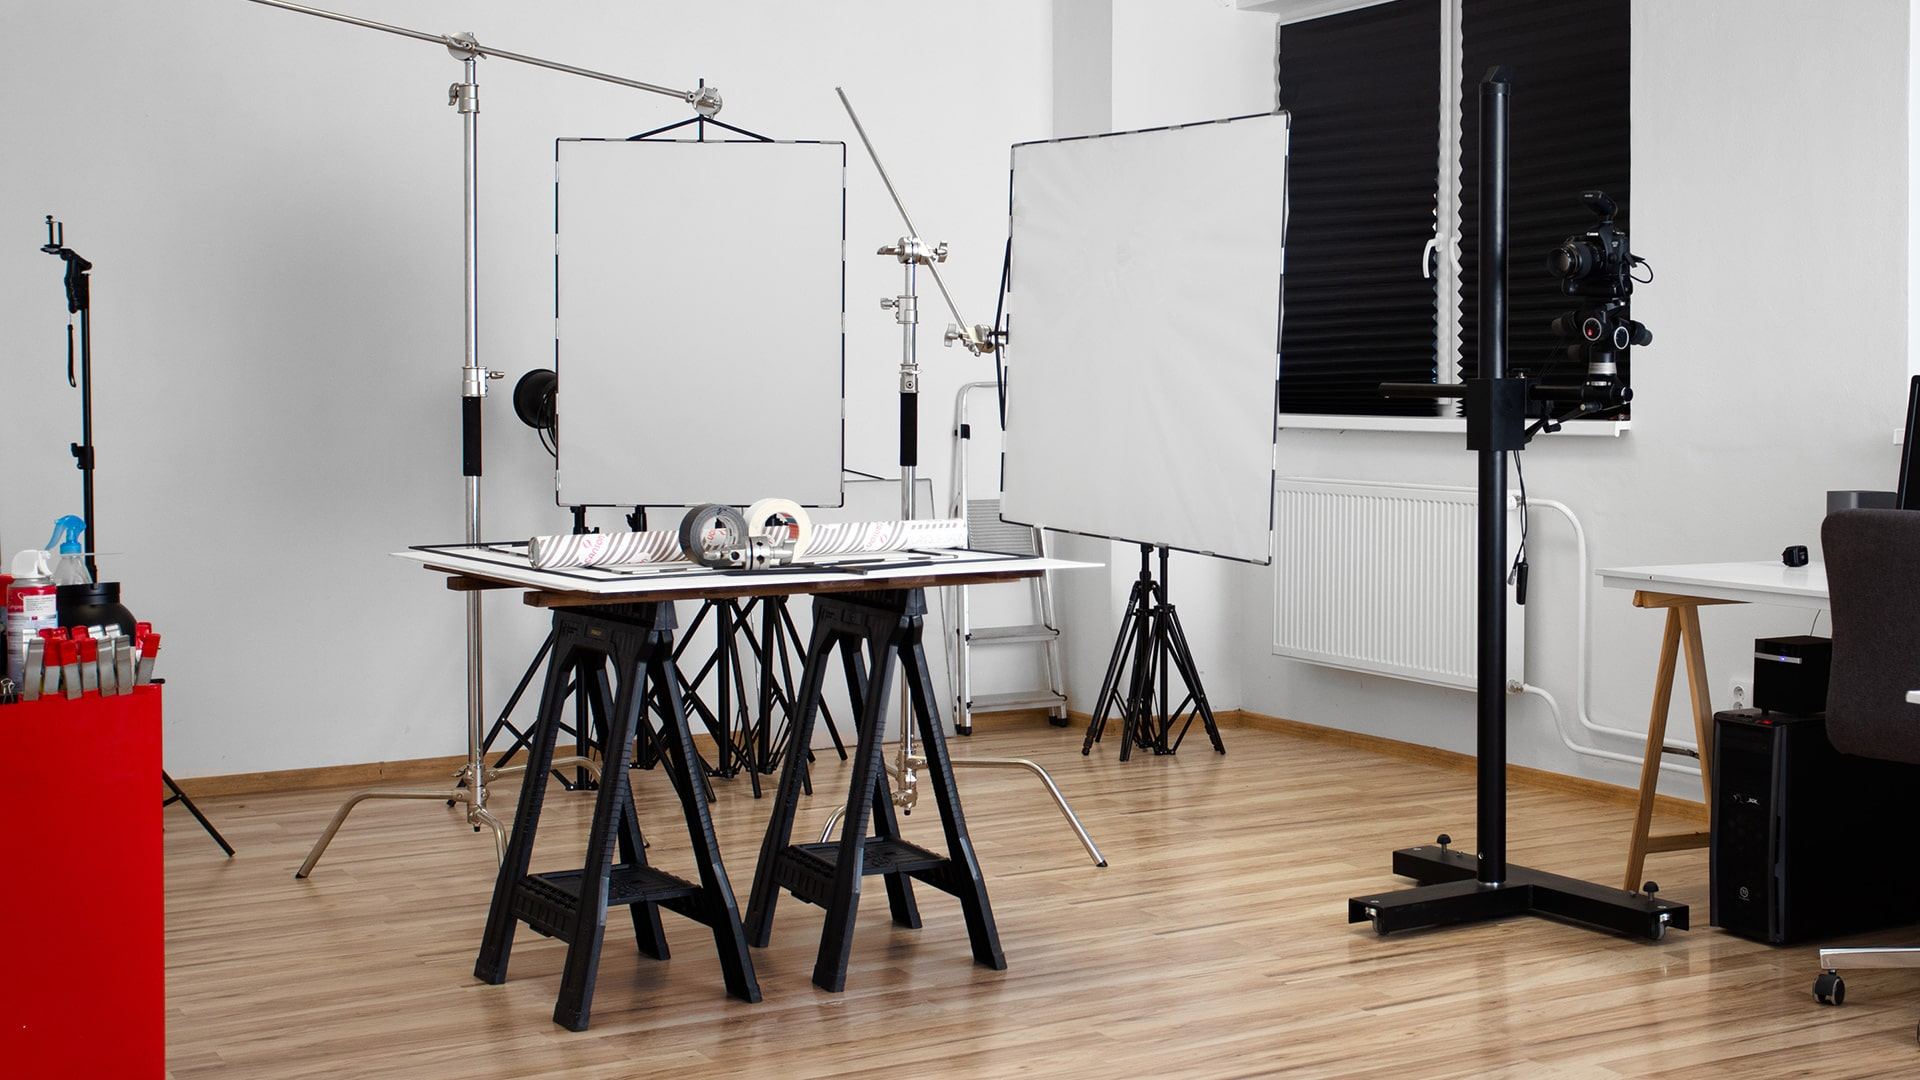 DIY diffusion panels for still life photography